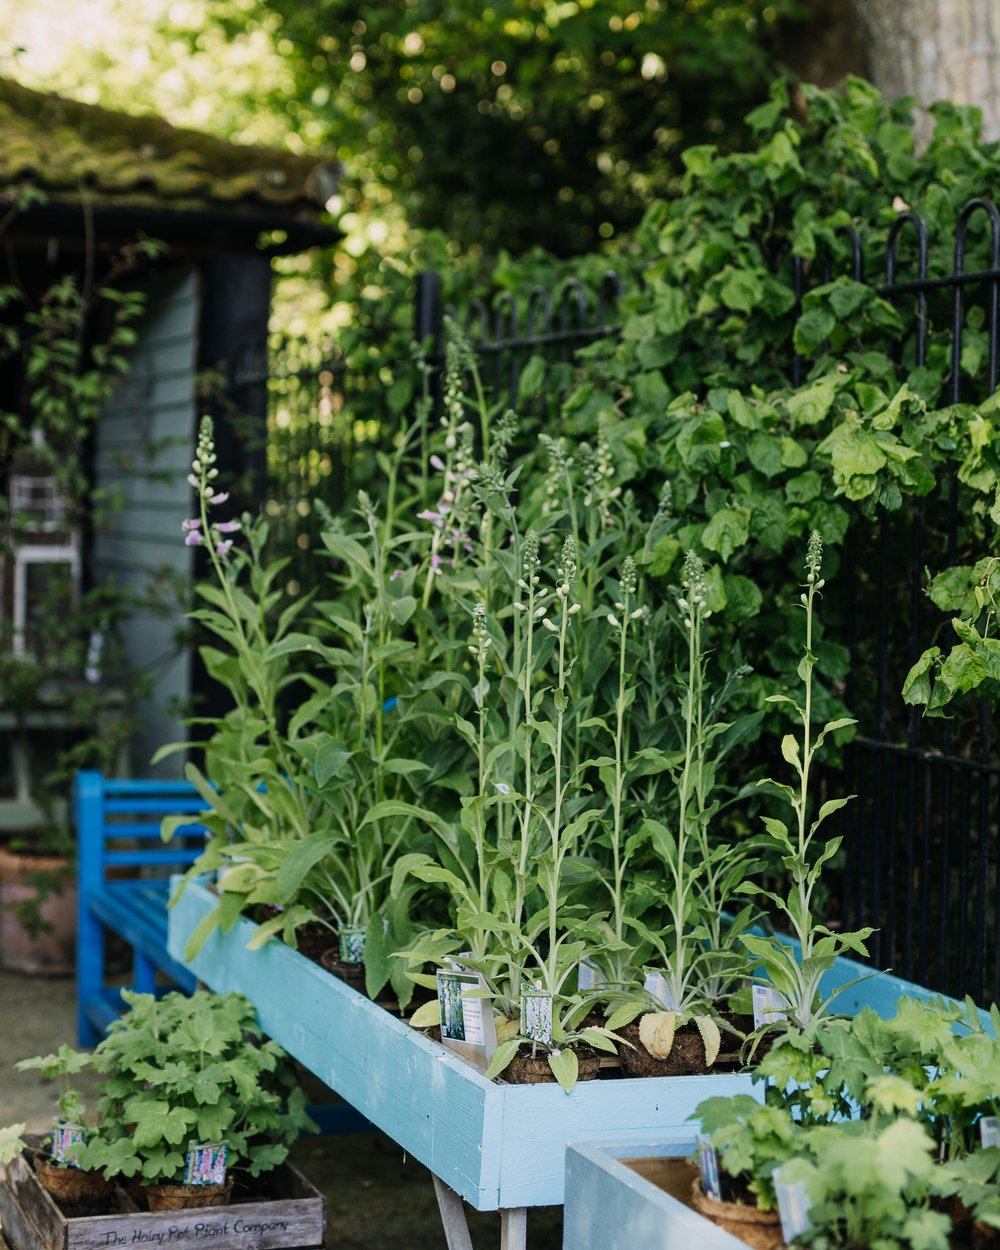 A year in your garden from our garden designer for horticultural therapy & wellbeing